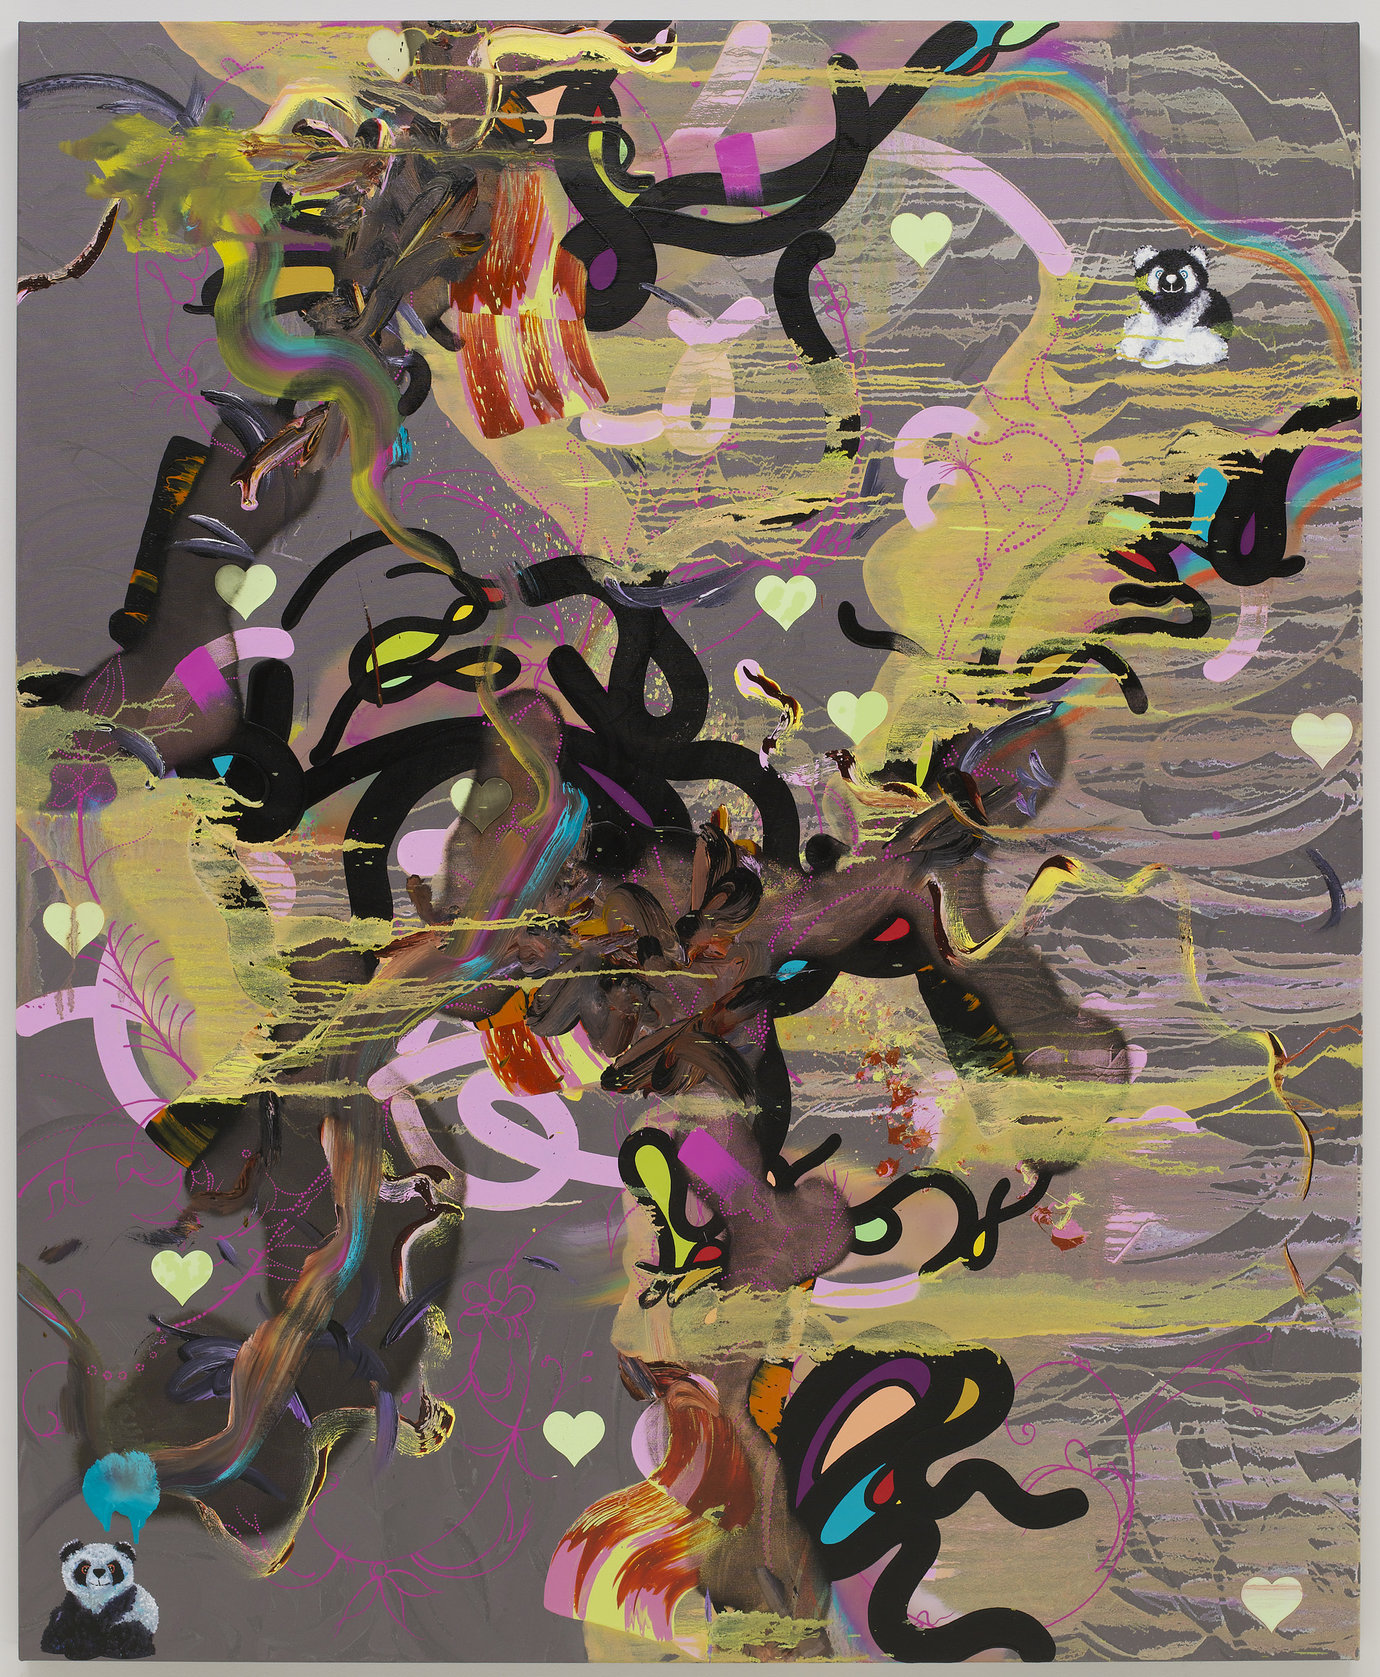 ", 2009. Oil and acrylic on canvas, 72"" x 59"" (182.9 cm x 149.9 cm)."